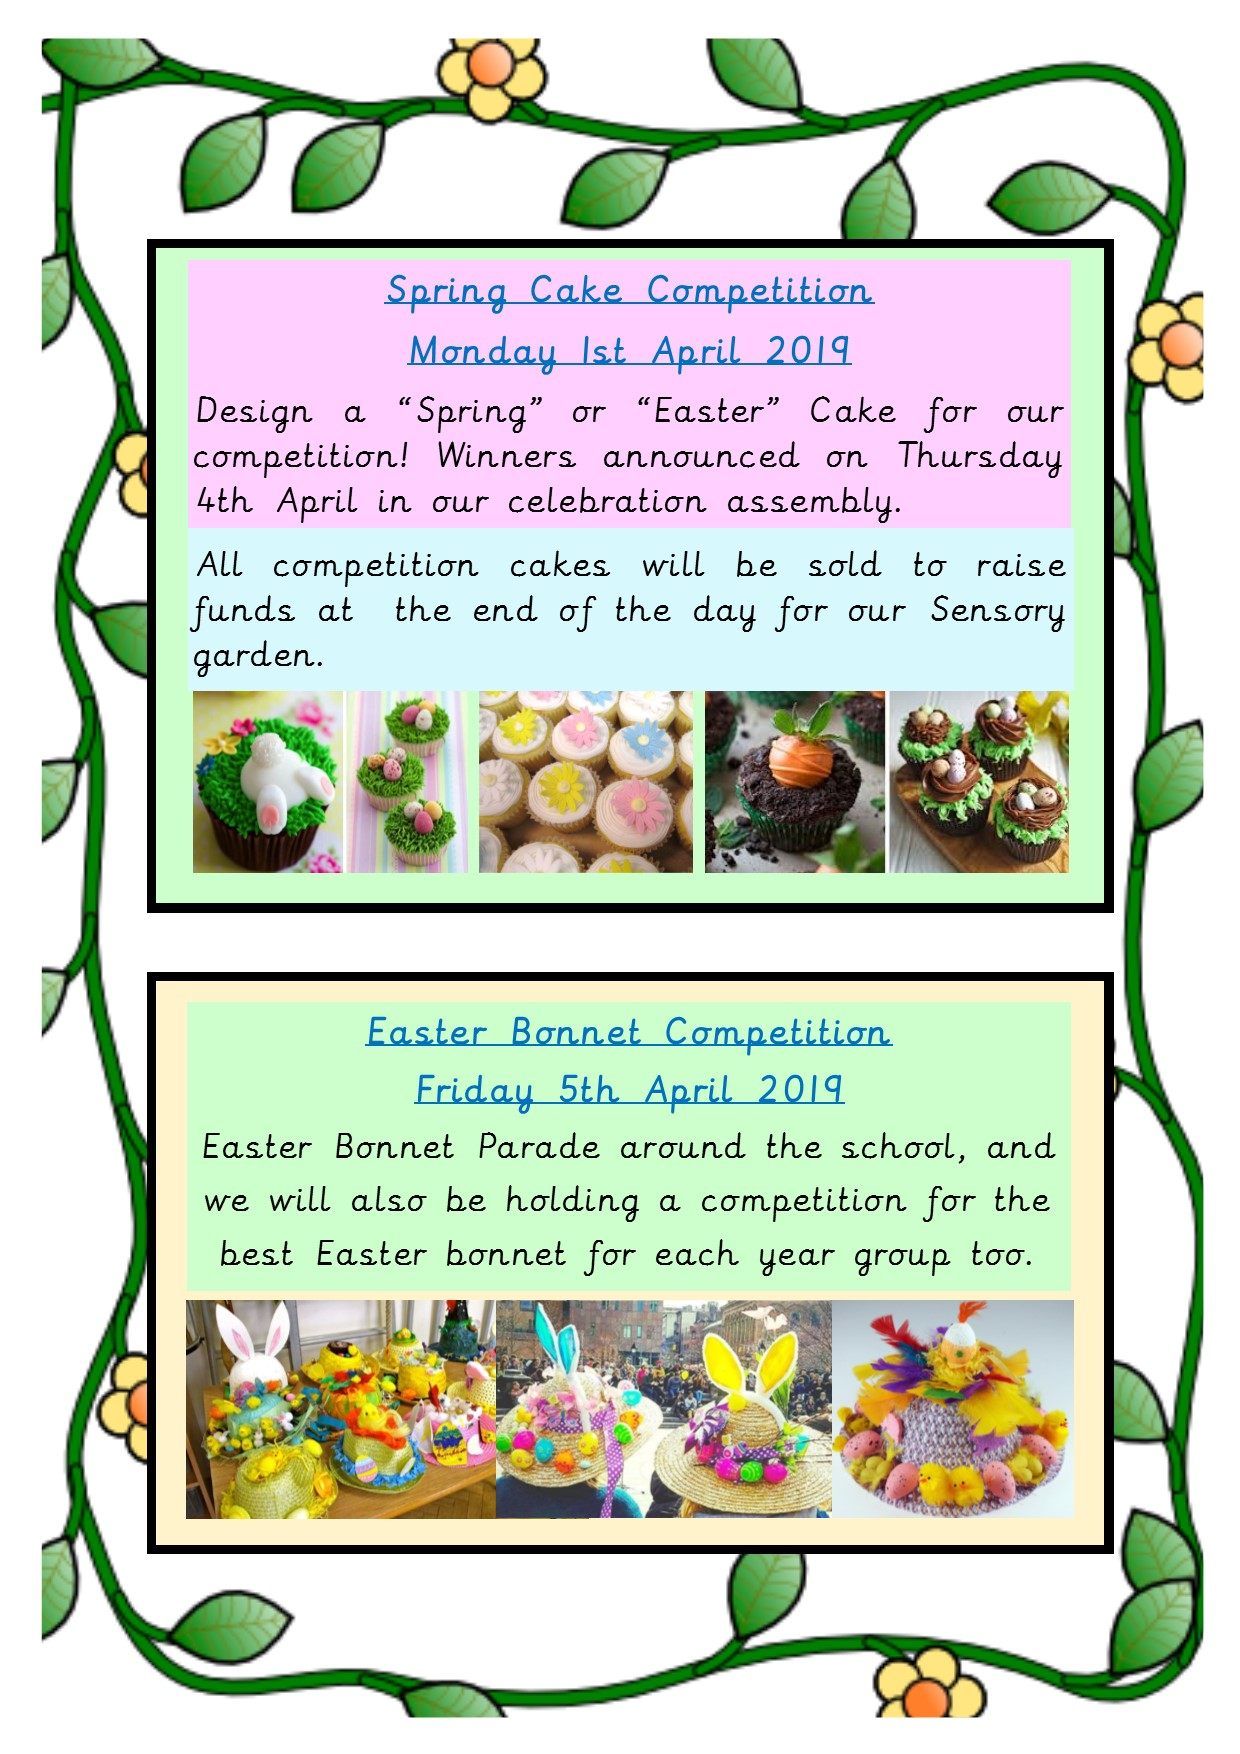 Exciting Easter Competitions!